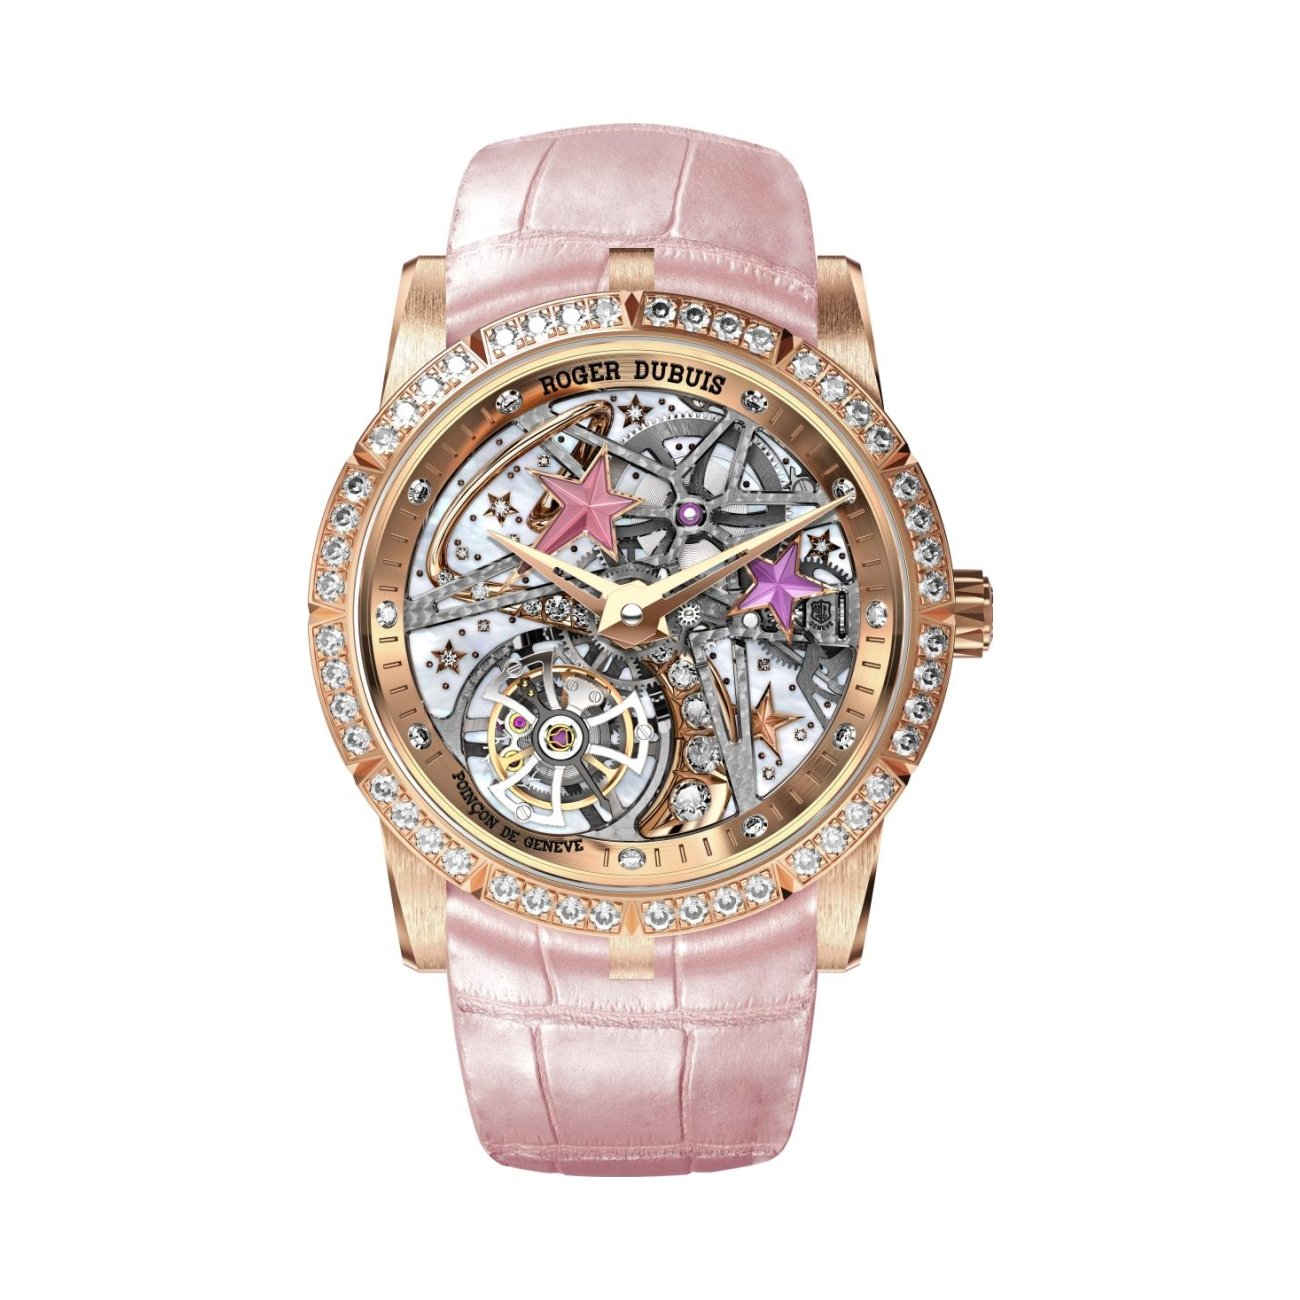 Montre Roger Dubuis Excalibur Original Shooting Star vue 1